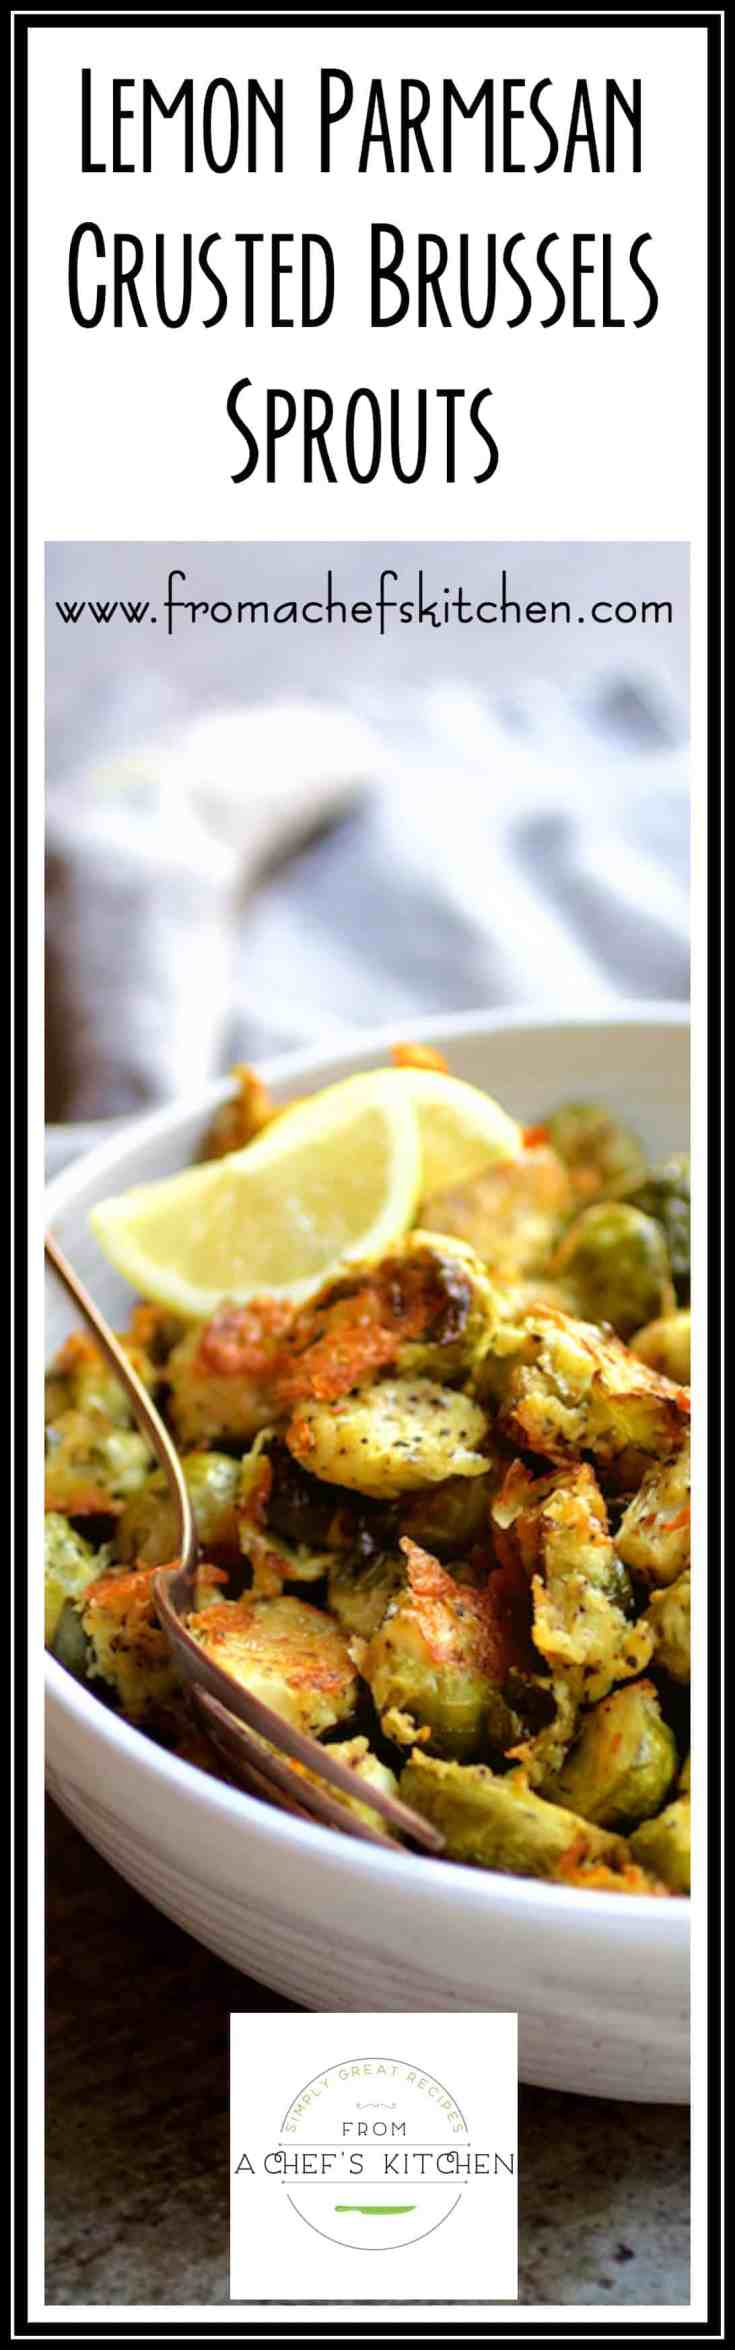 Lemon Parmesan Crusted Brussels Sprouts are not just roasted, but crusted--crusted with Parmesan cheese and a spark of lemon!  Brussels sprouts don't get any better than this! #Brusselssprouts #lemon #parmesan #vegetable